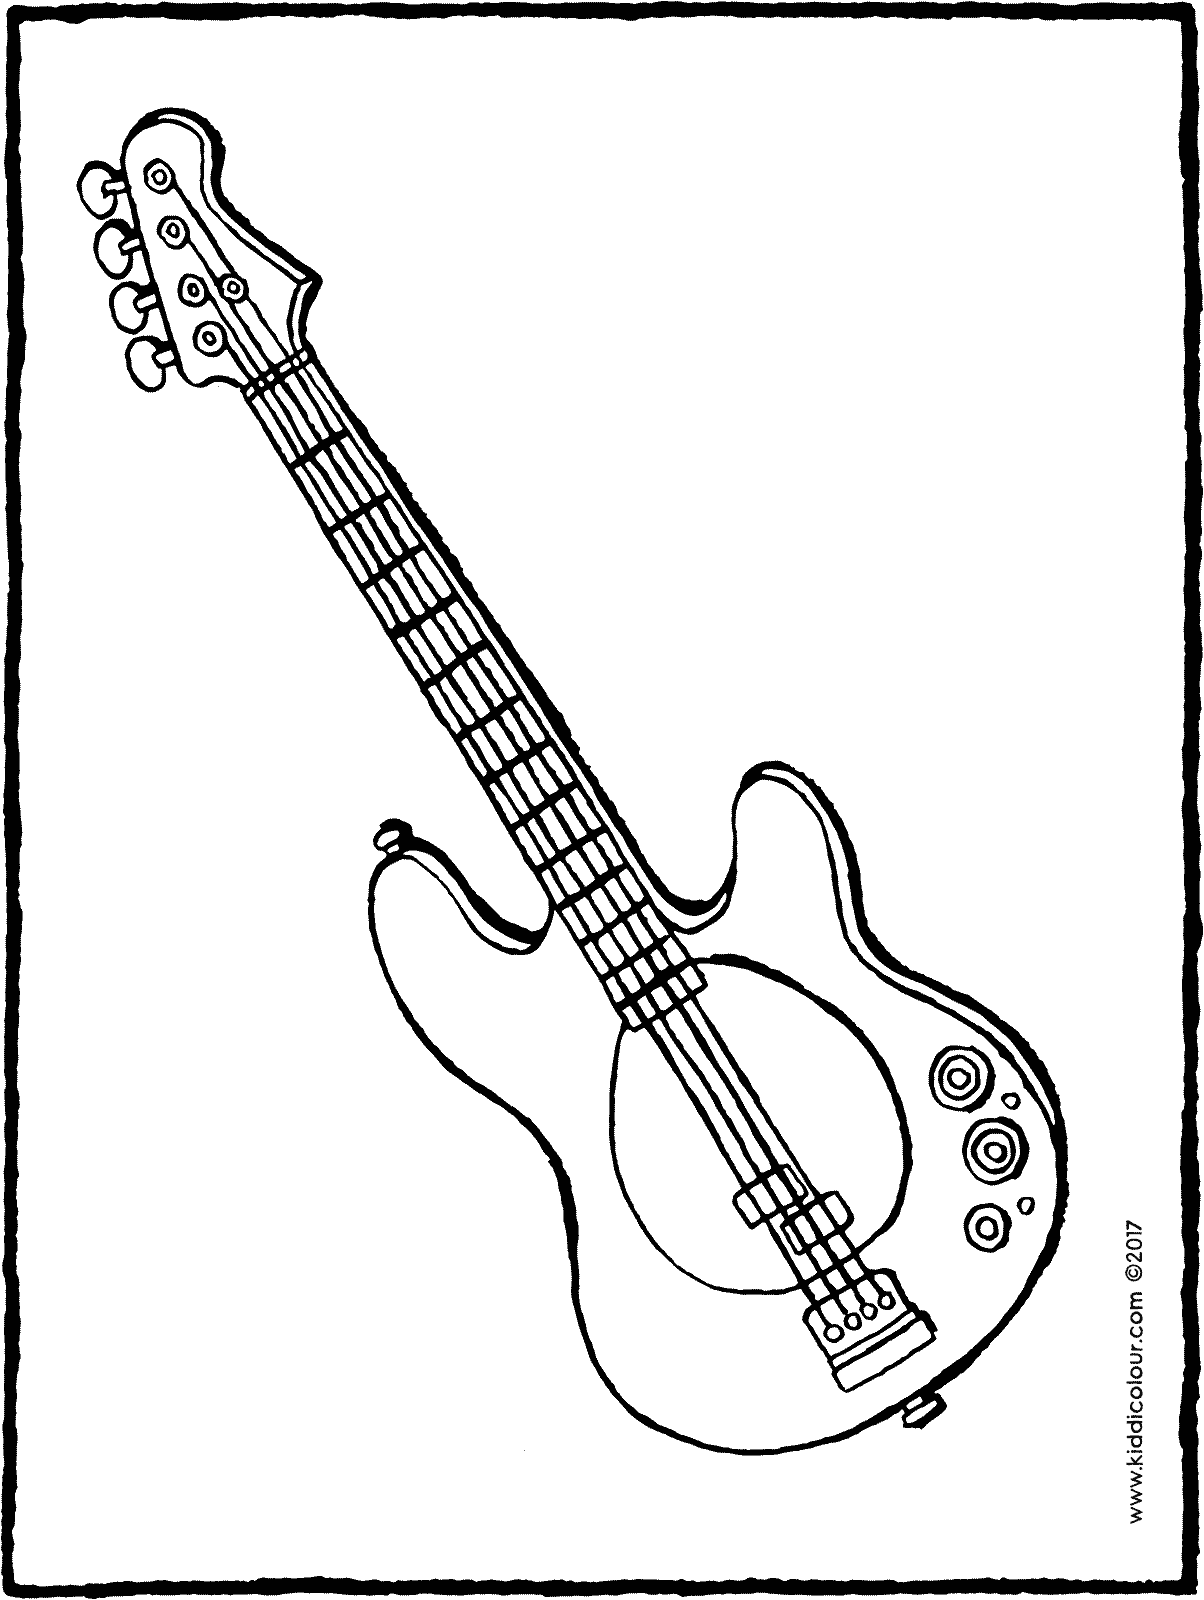 guitar colouring page drawing picture 01H